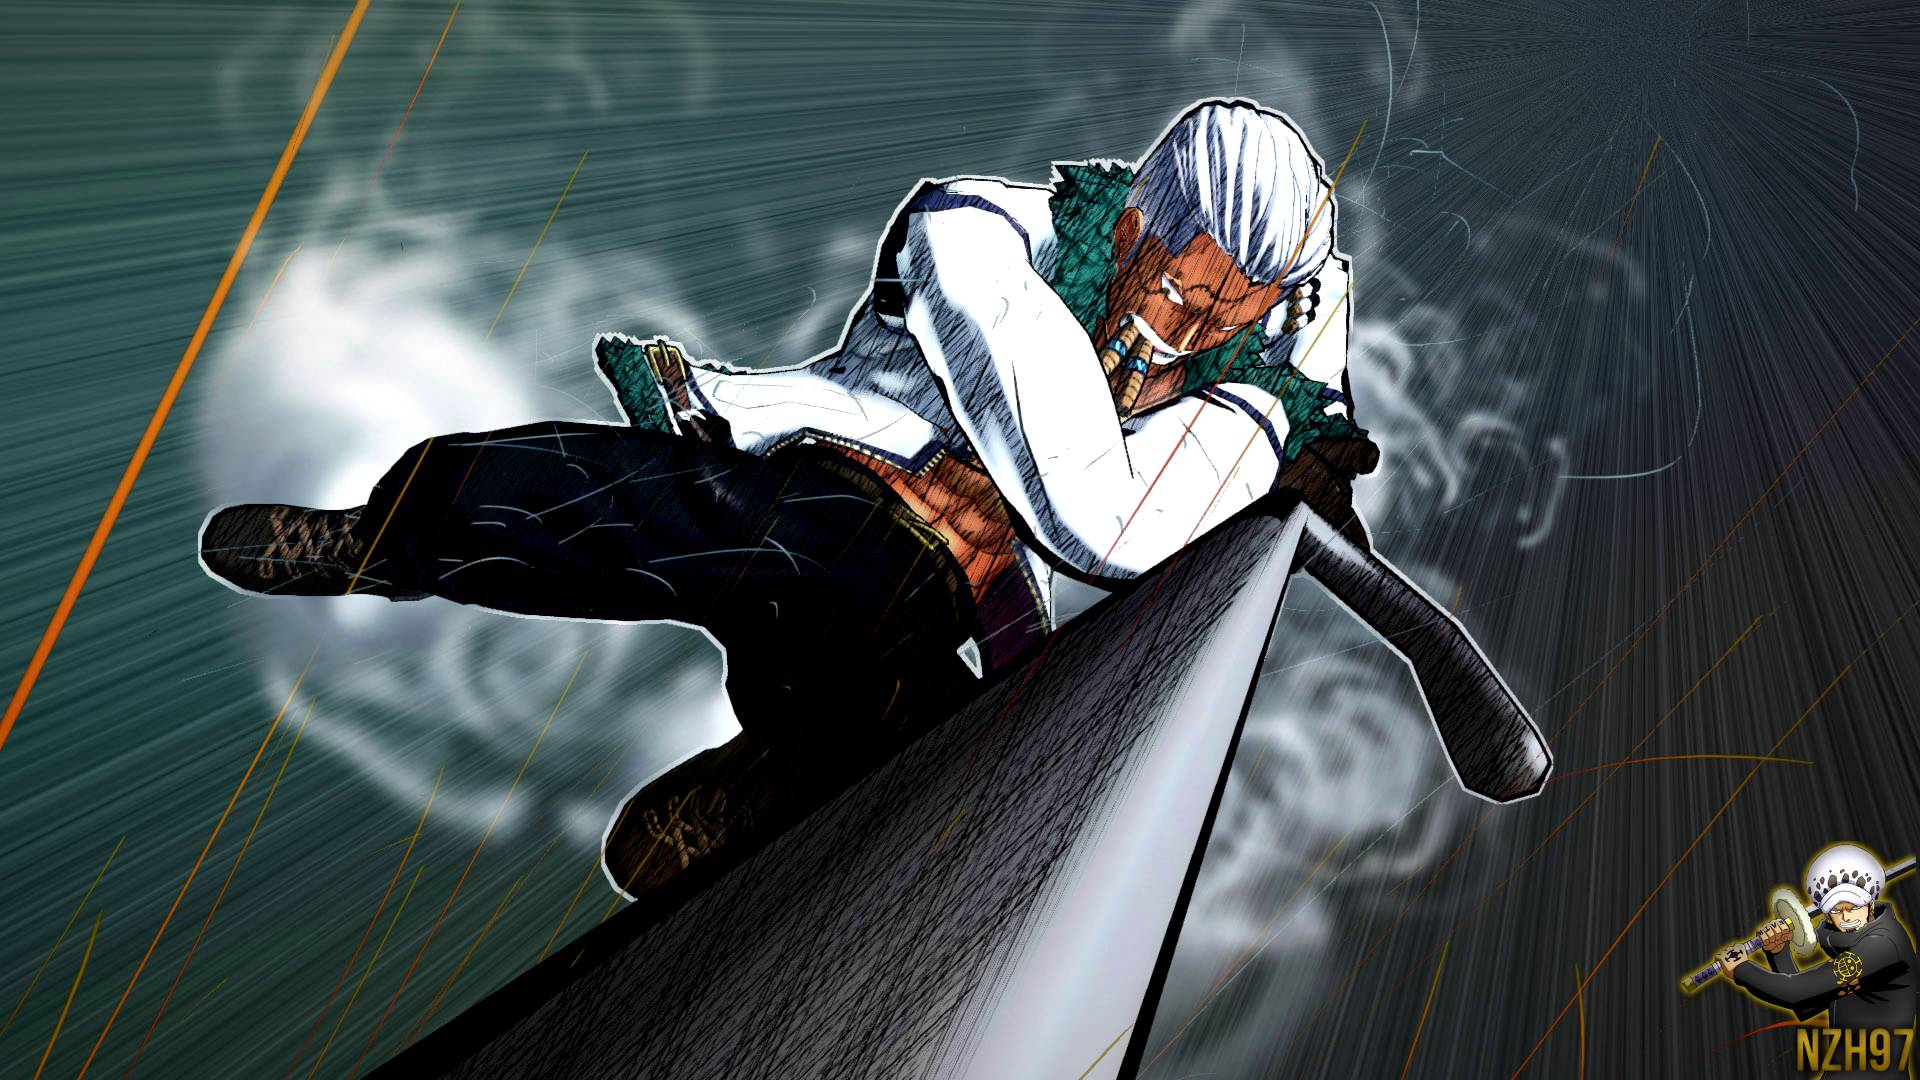 Download One Piece Smoker Wallpaper Gallery